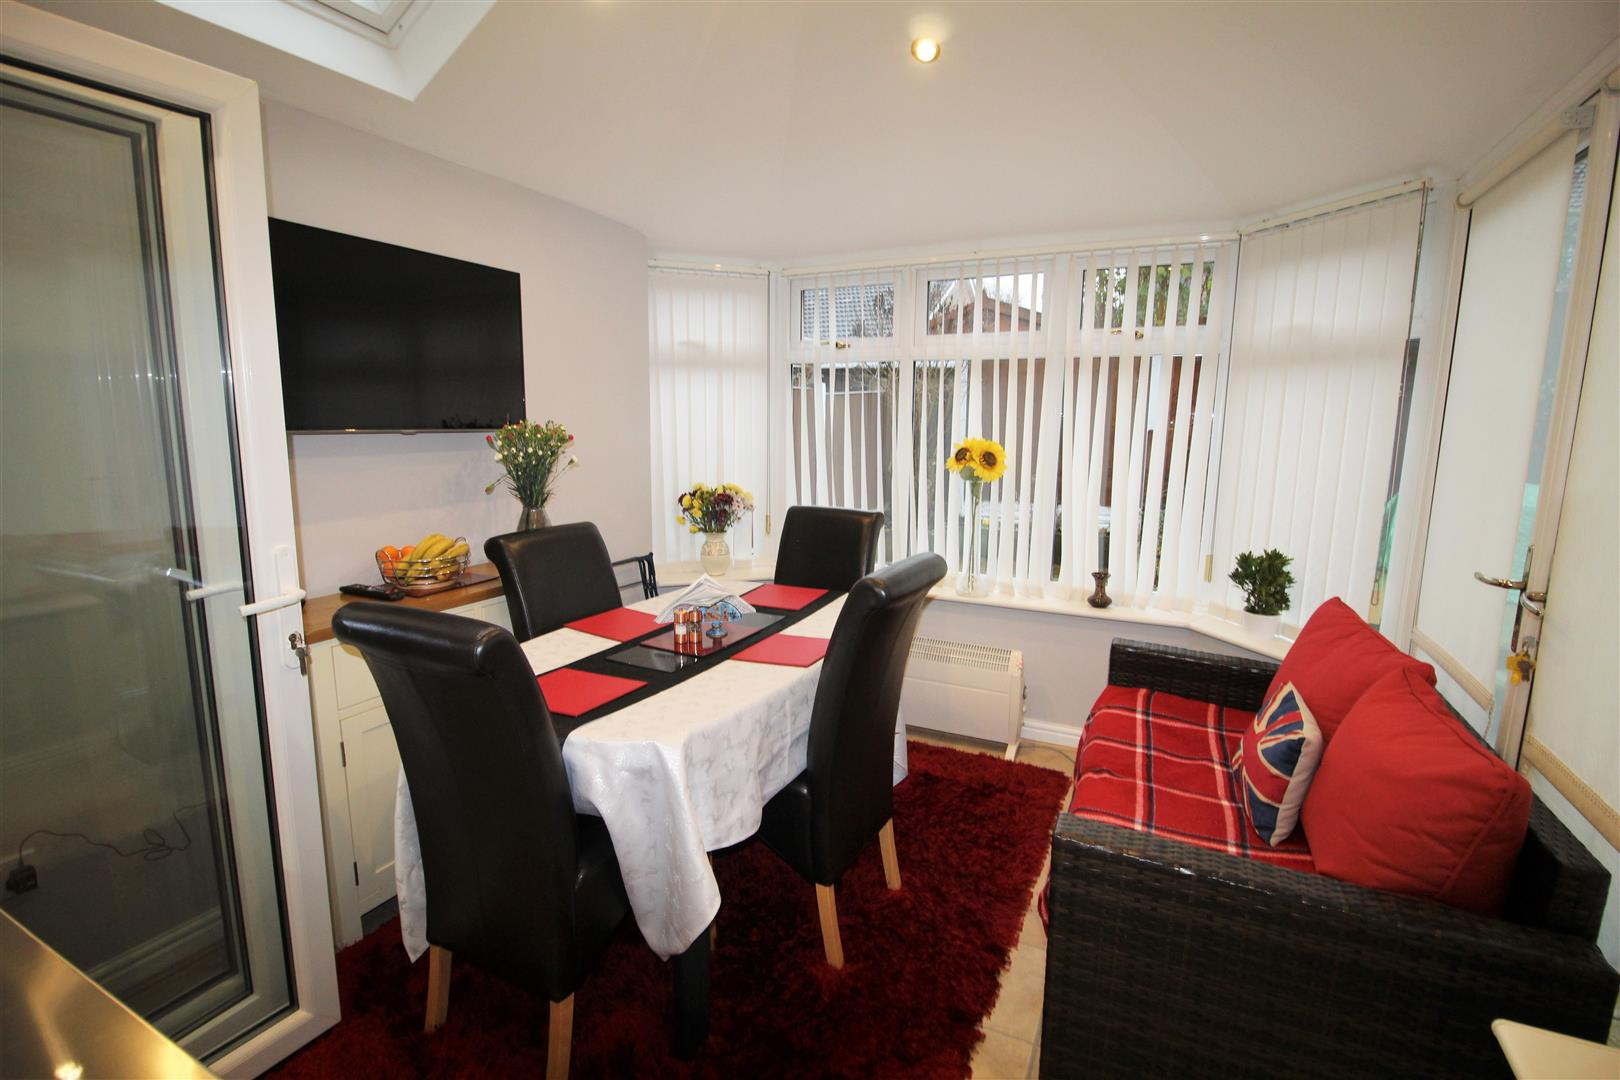 3 Bedrooms, House - Semi-Detached, Brierley Close, Bootle